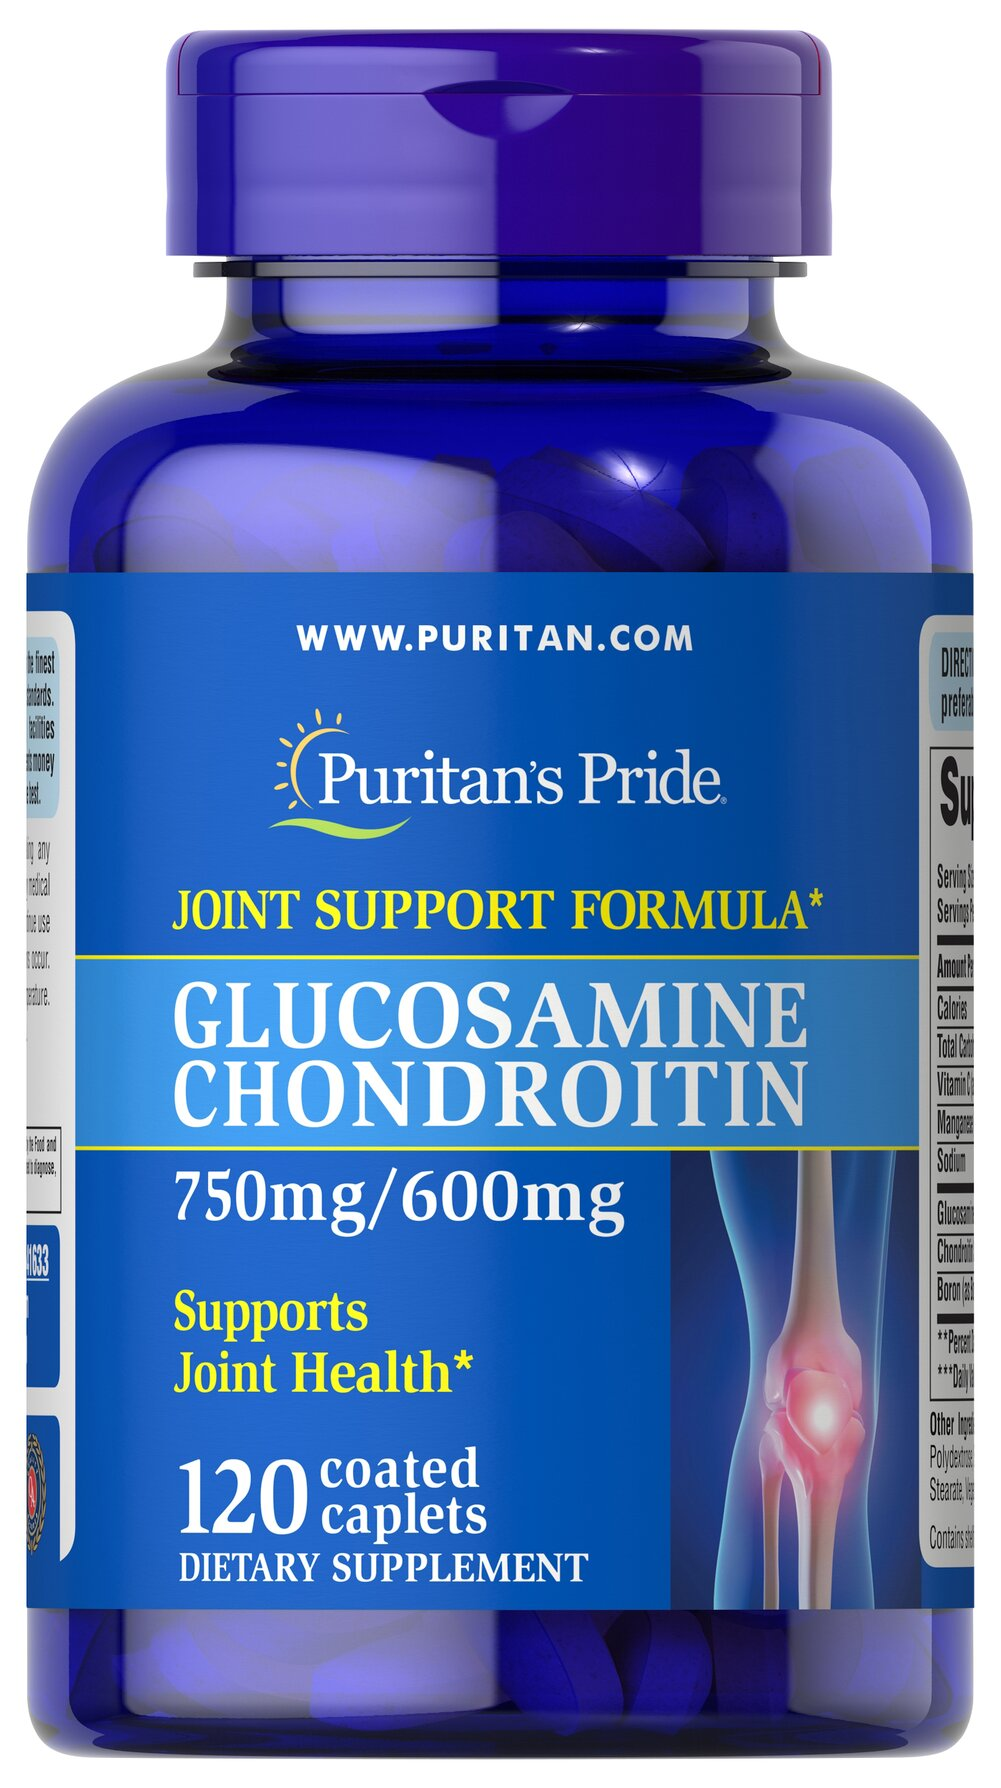 Triple Strength Glucosamine Chondroitin 750 mg/600 mg <p>Glucosamine is a key structural component in cartilage and acts as a lubricant**</p> <p>Chondroitin acts as a lubricant and is an important molecular component of glycosaminoglycans**</p> <p>One serving of Triple Strength Glucosamine Chondroitin helps promote comfortable joint movement and two caplets provide 1500 mg Glucosamine and 1200 mg Chondroitin.</p> 120 Caplets 750 mg/600 mg $43.99